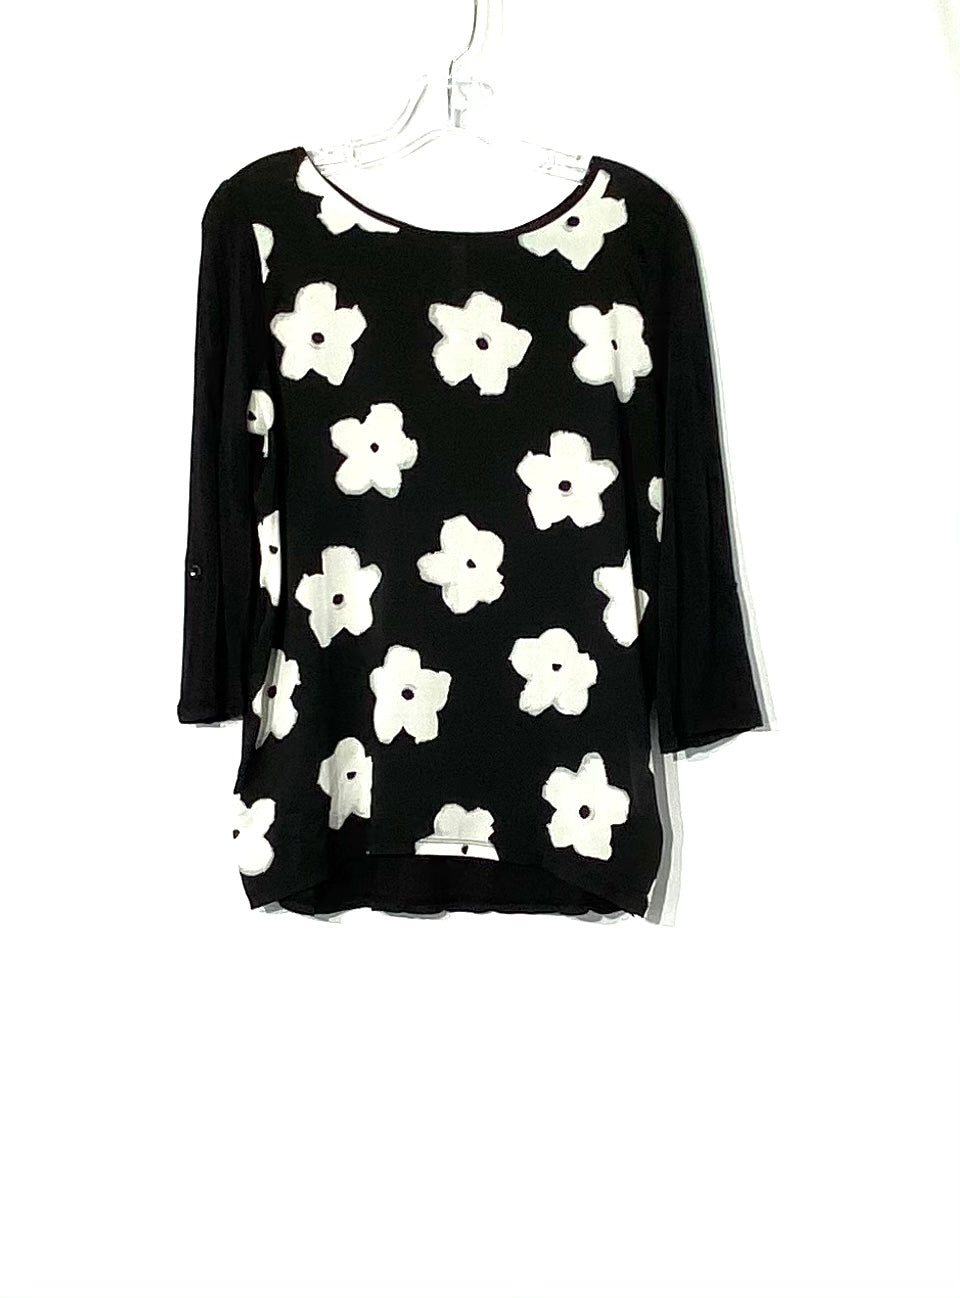 Primary Photo - BRAND: KENSIE <BR>STYLE: TOP 3/4 SHORT SLEEVE <BR>COLOR: BLACK WHITE <BR>SIZE: M <BR>SKU: 262-26275-71802